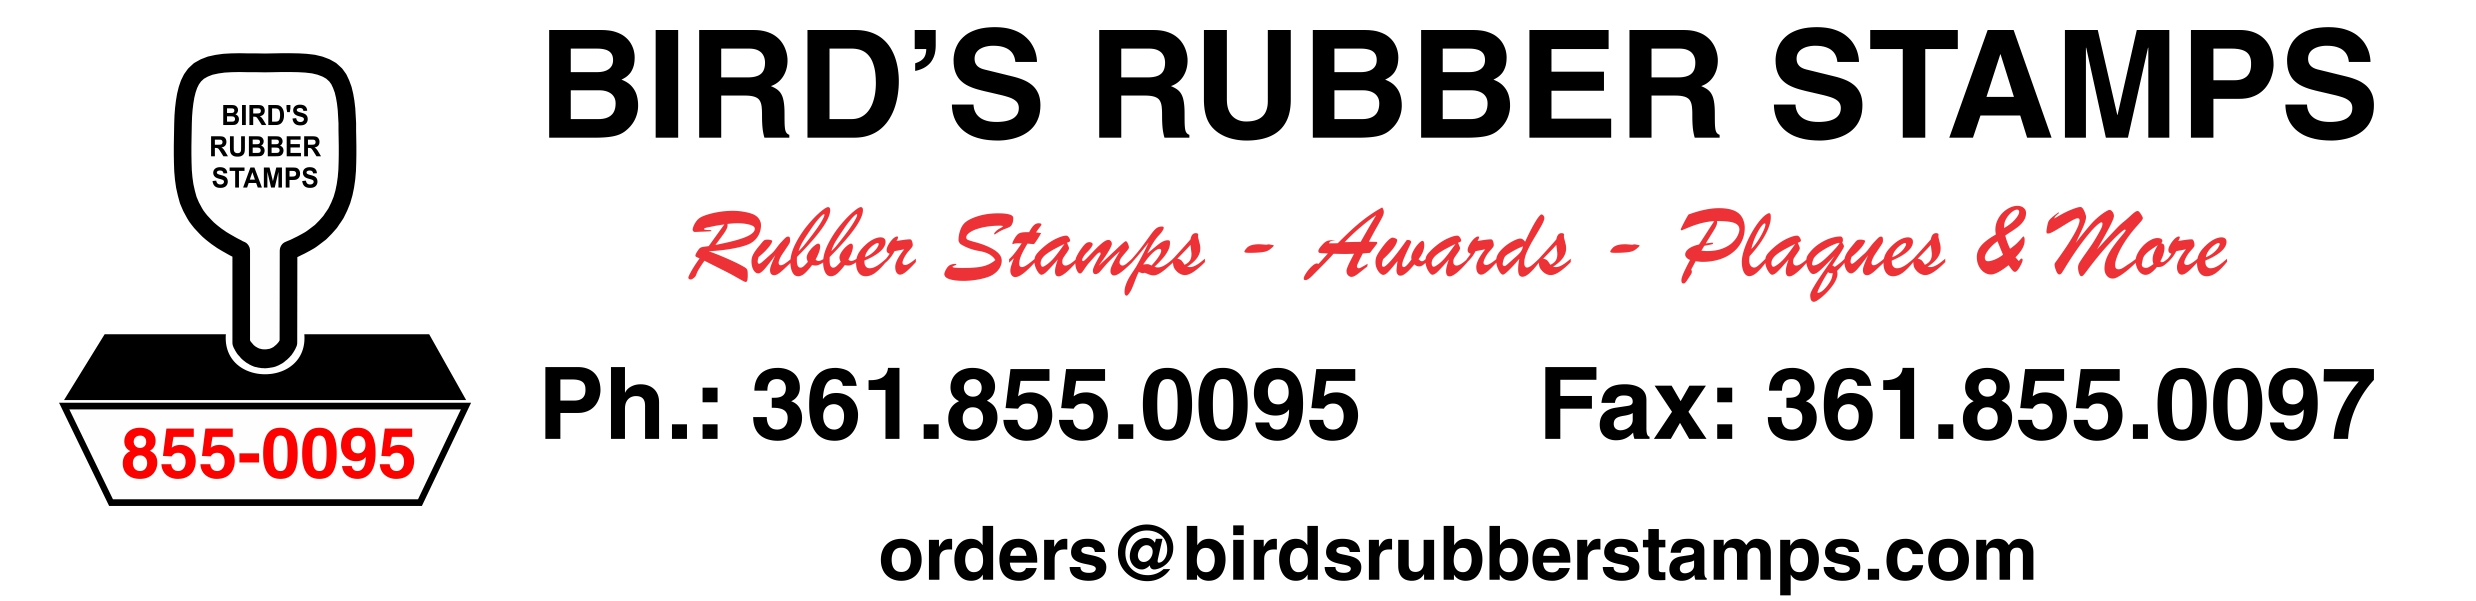 Bird's Rubber Stamps